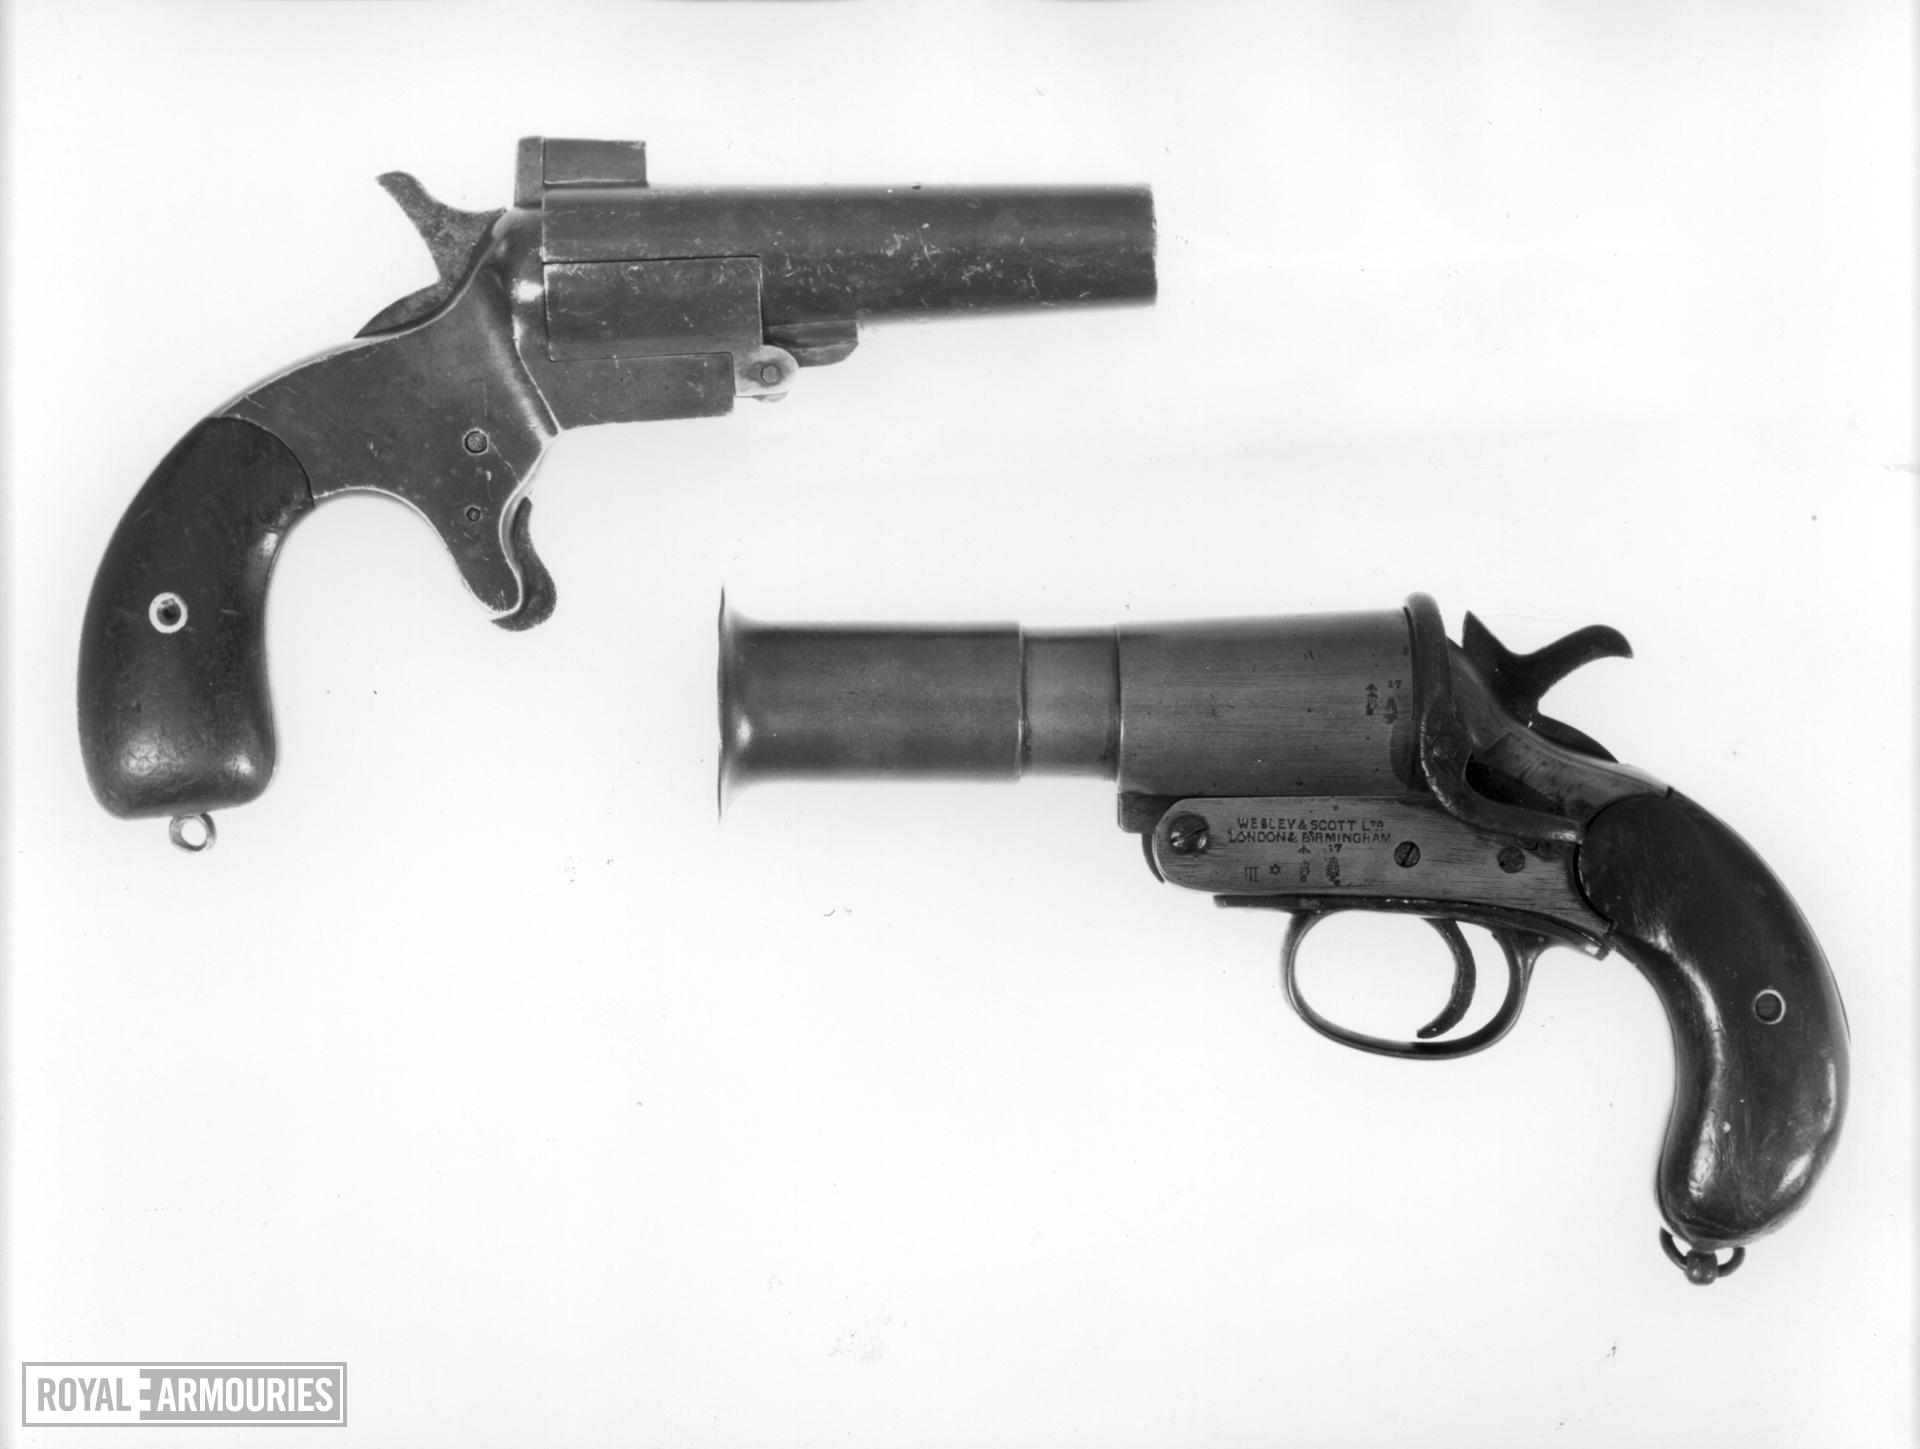 Centrefire breech-loading signal pistol - Dyer and Robinson Patent